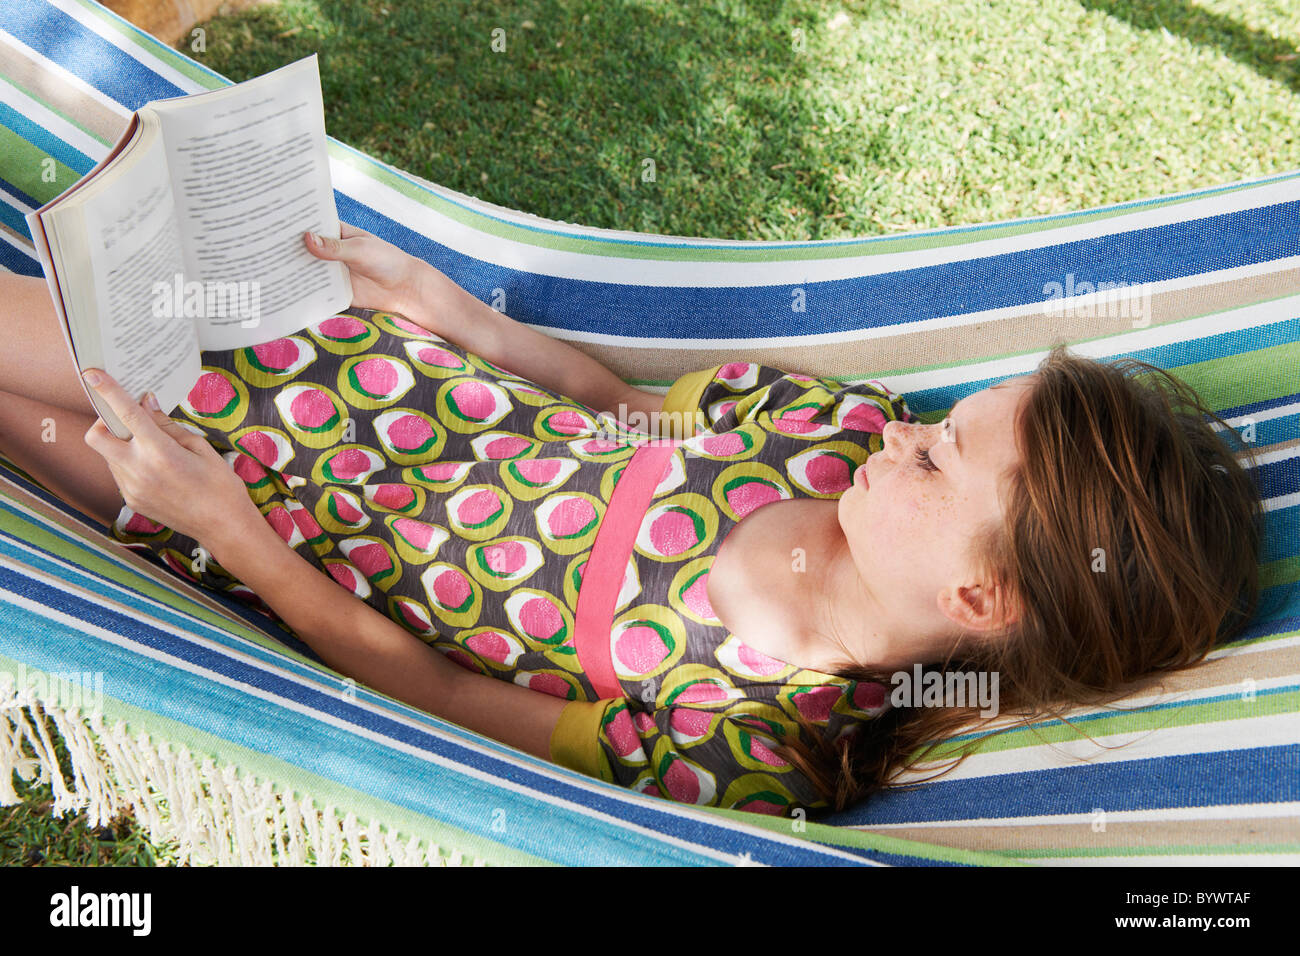 Girl reading a book in a hammock - Stock Image